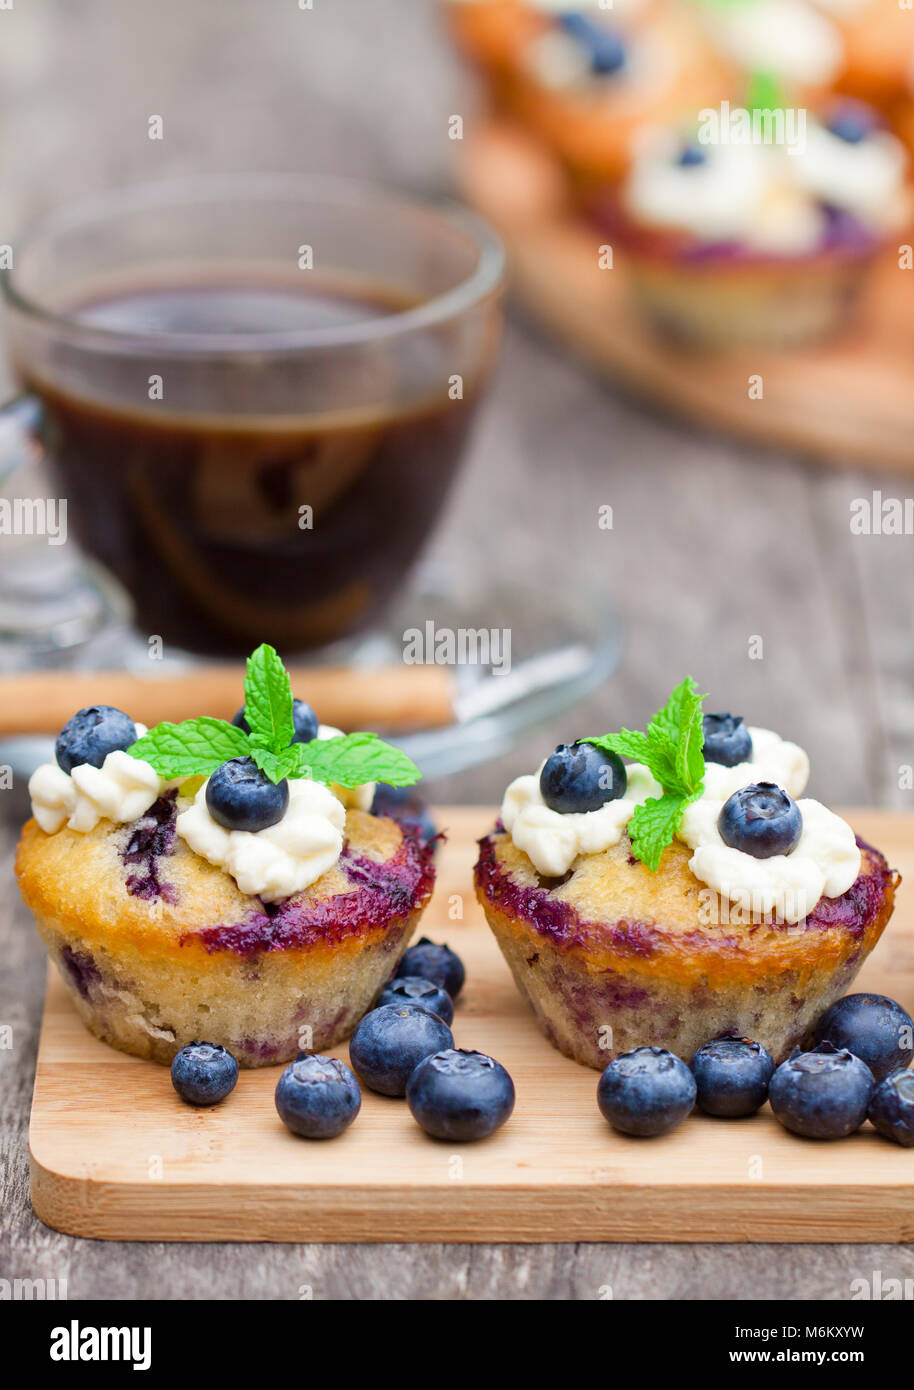 fresh  muffins with blueberry and cup of coffee on wooden background Stock Photo